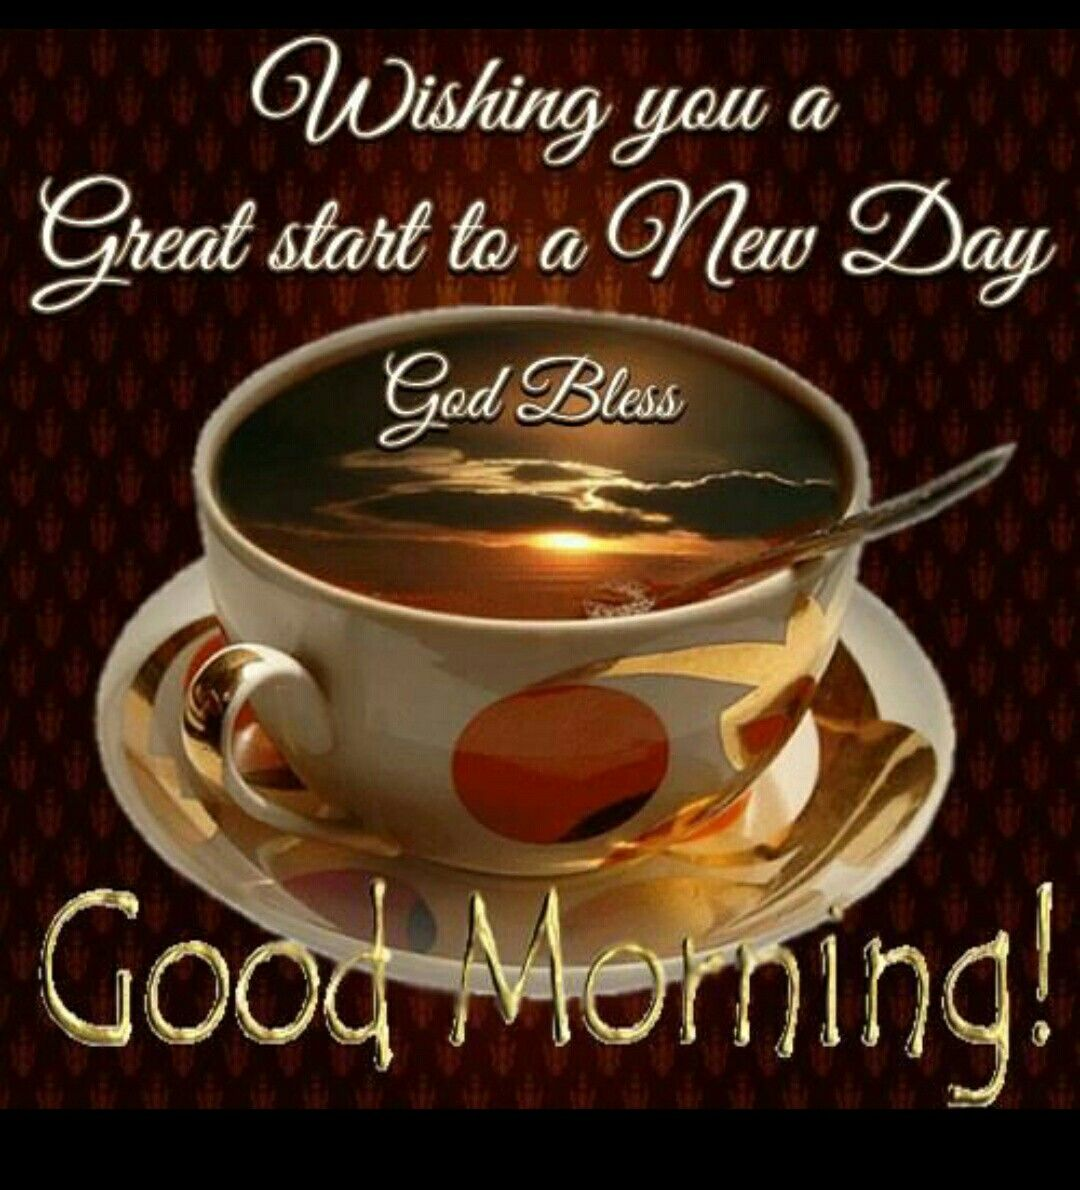 Good Morning Good Morning Quotes Morning Quotes For Friends